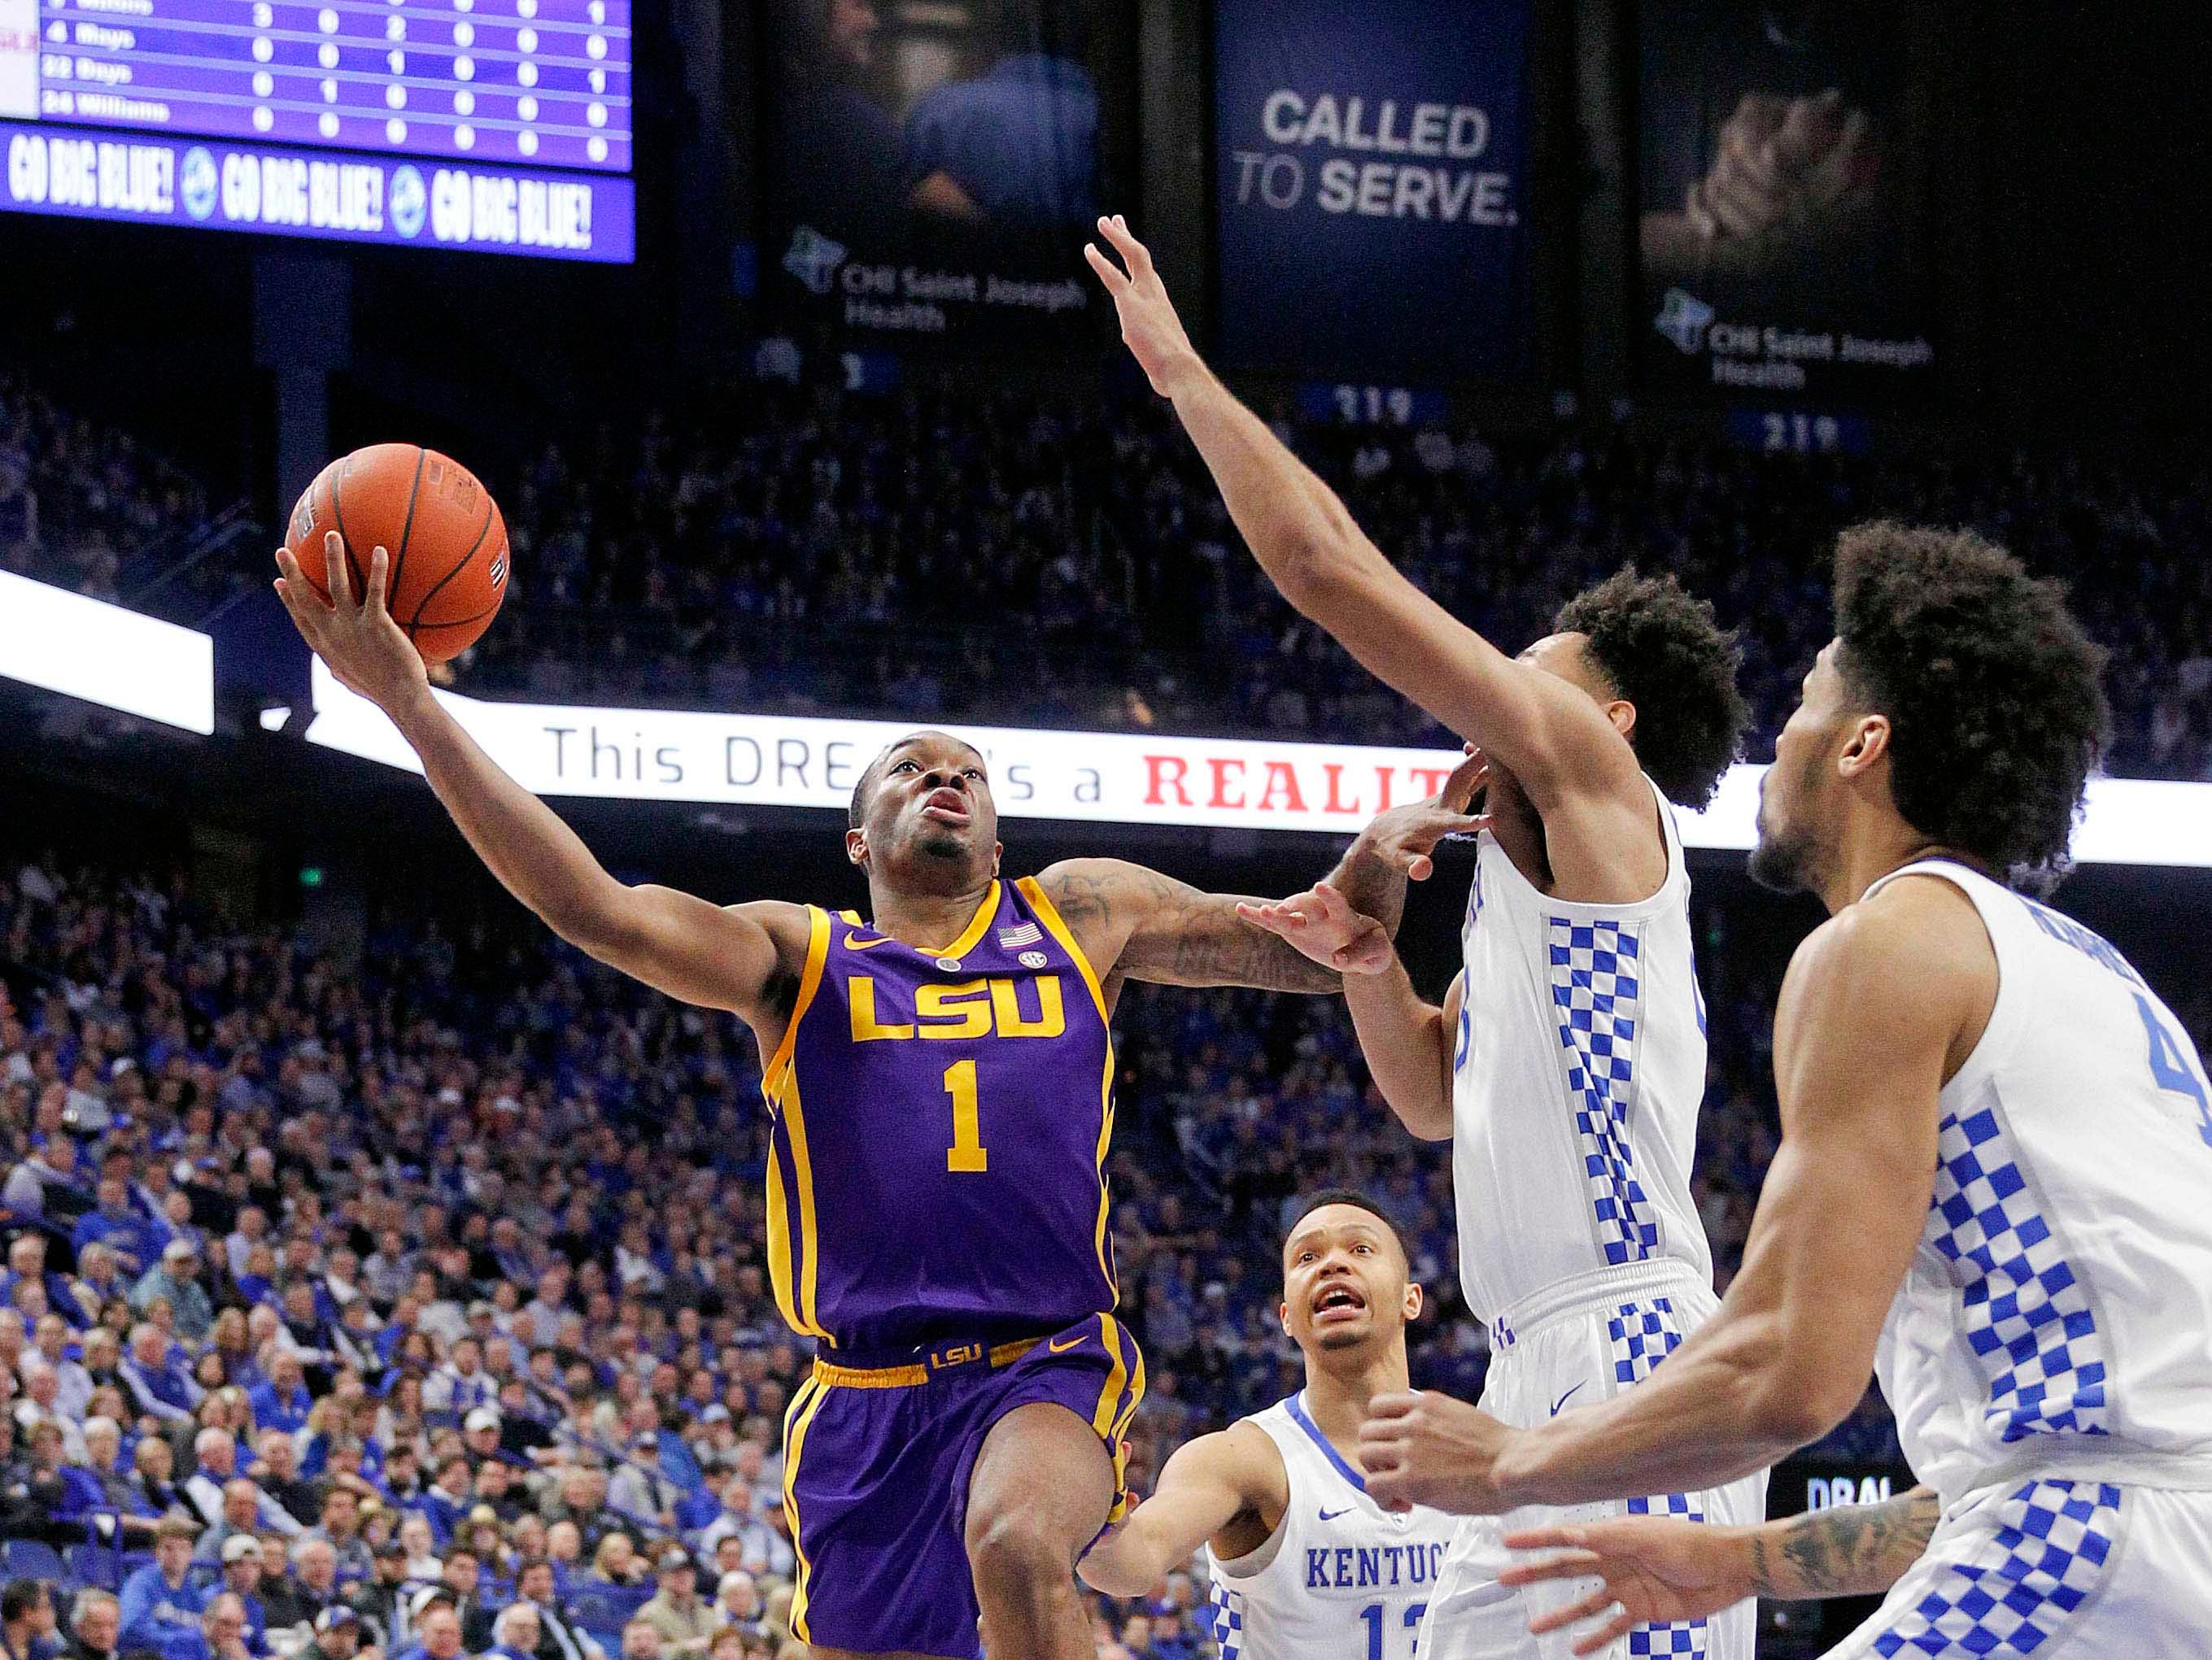 Feb 12, 2019; Lexington, KY, USA; LSU Tigers guard Ja'vonte Smart (1) shoots the ball against the Kentucky Wildcats in the first half at Rupp Arena. Mandatory Credit: Mark Zerof-USA TODAY Sports